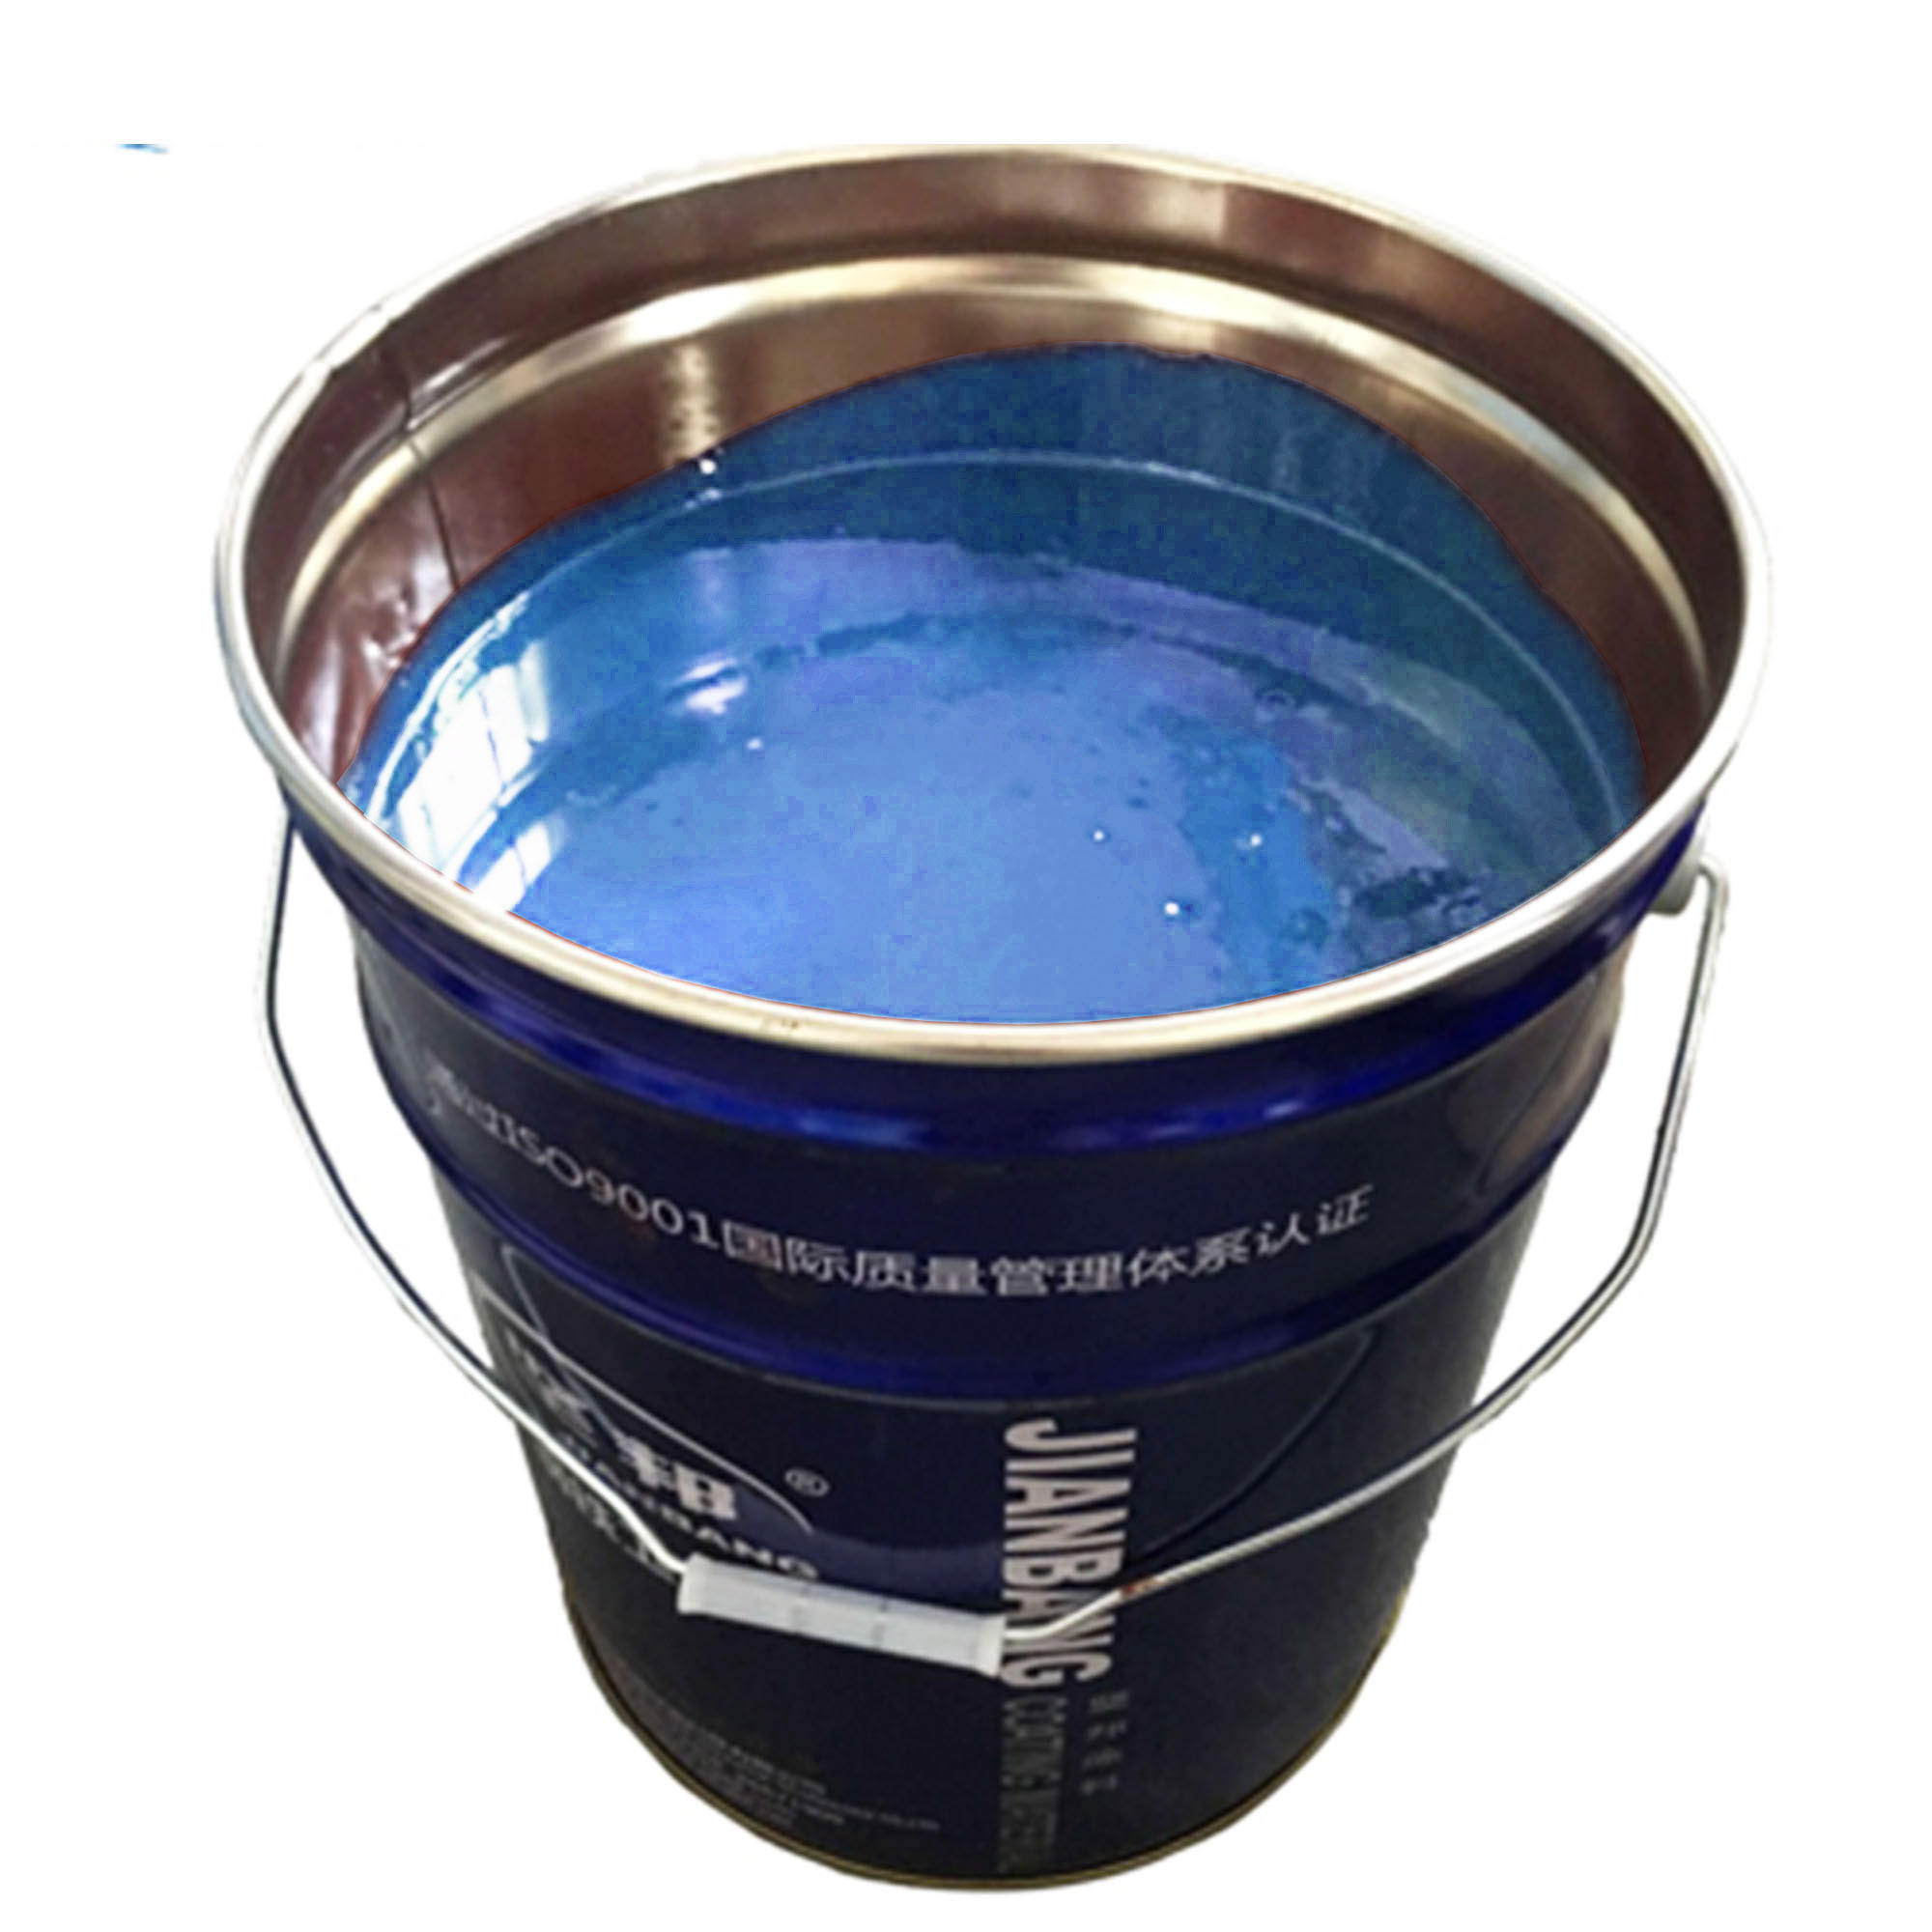 JIANBANG Epoxy Resin Floor Coating Paint for Garage Floors, Basements, Concrete